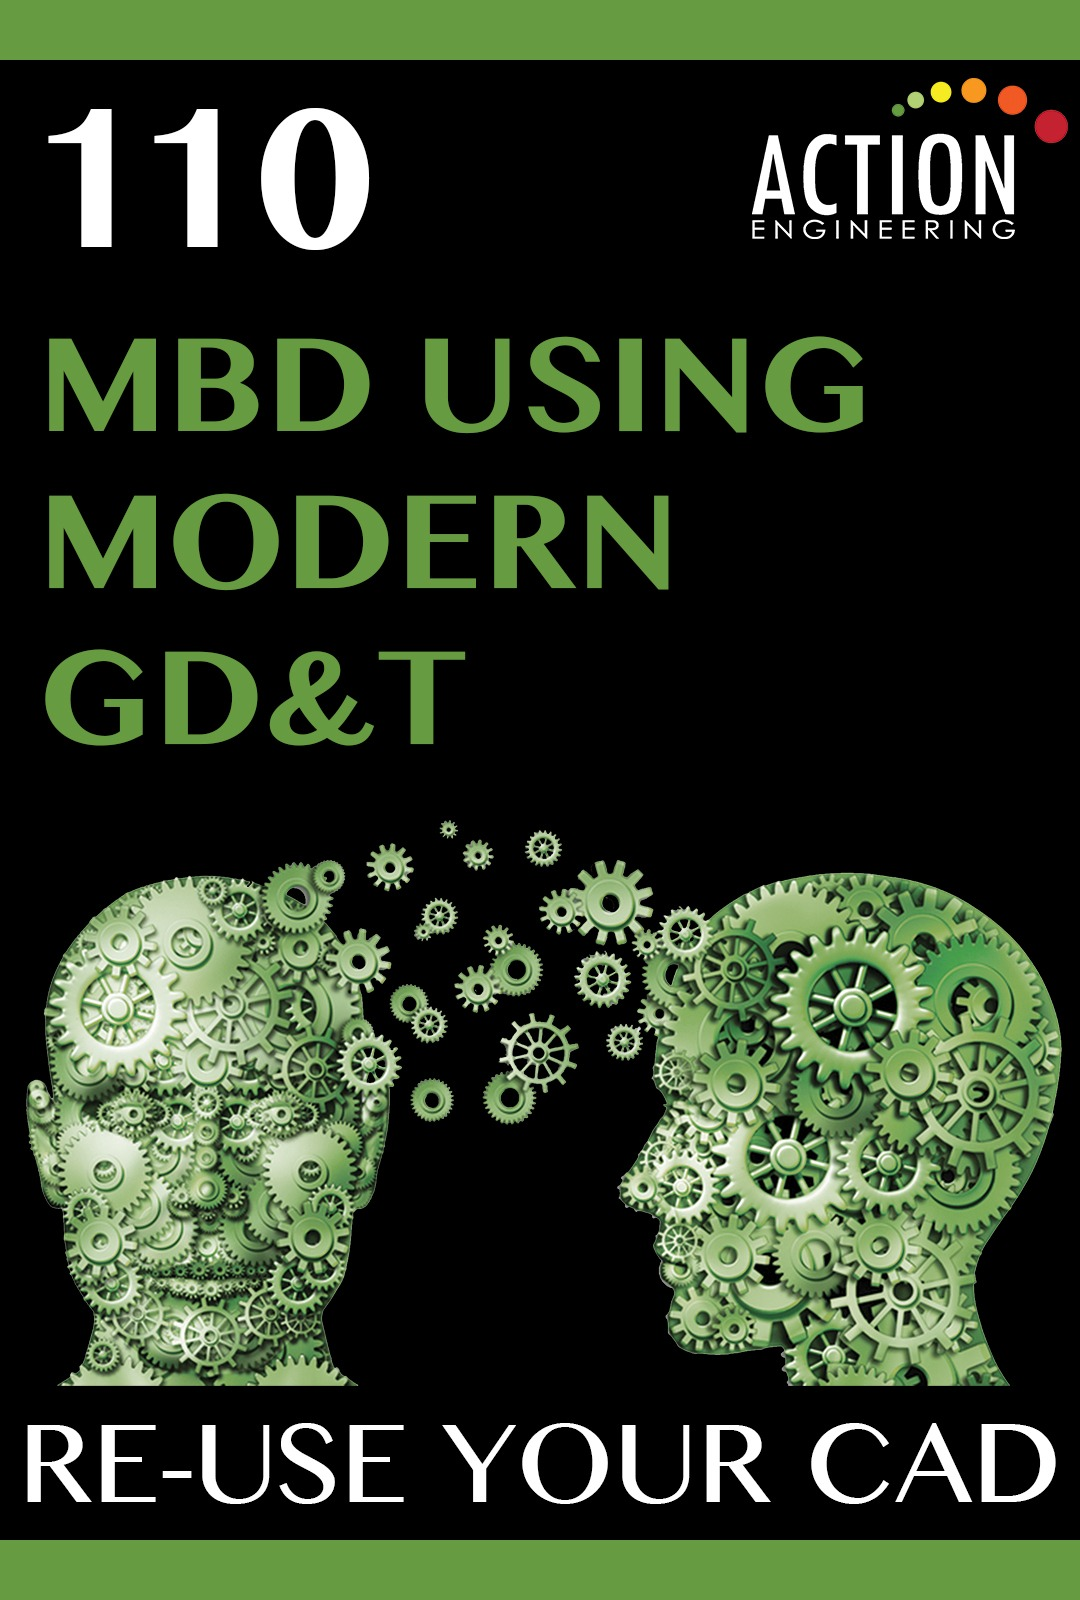 Course 110 MBD Using Modern GD&T